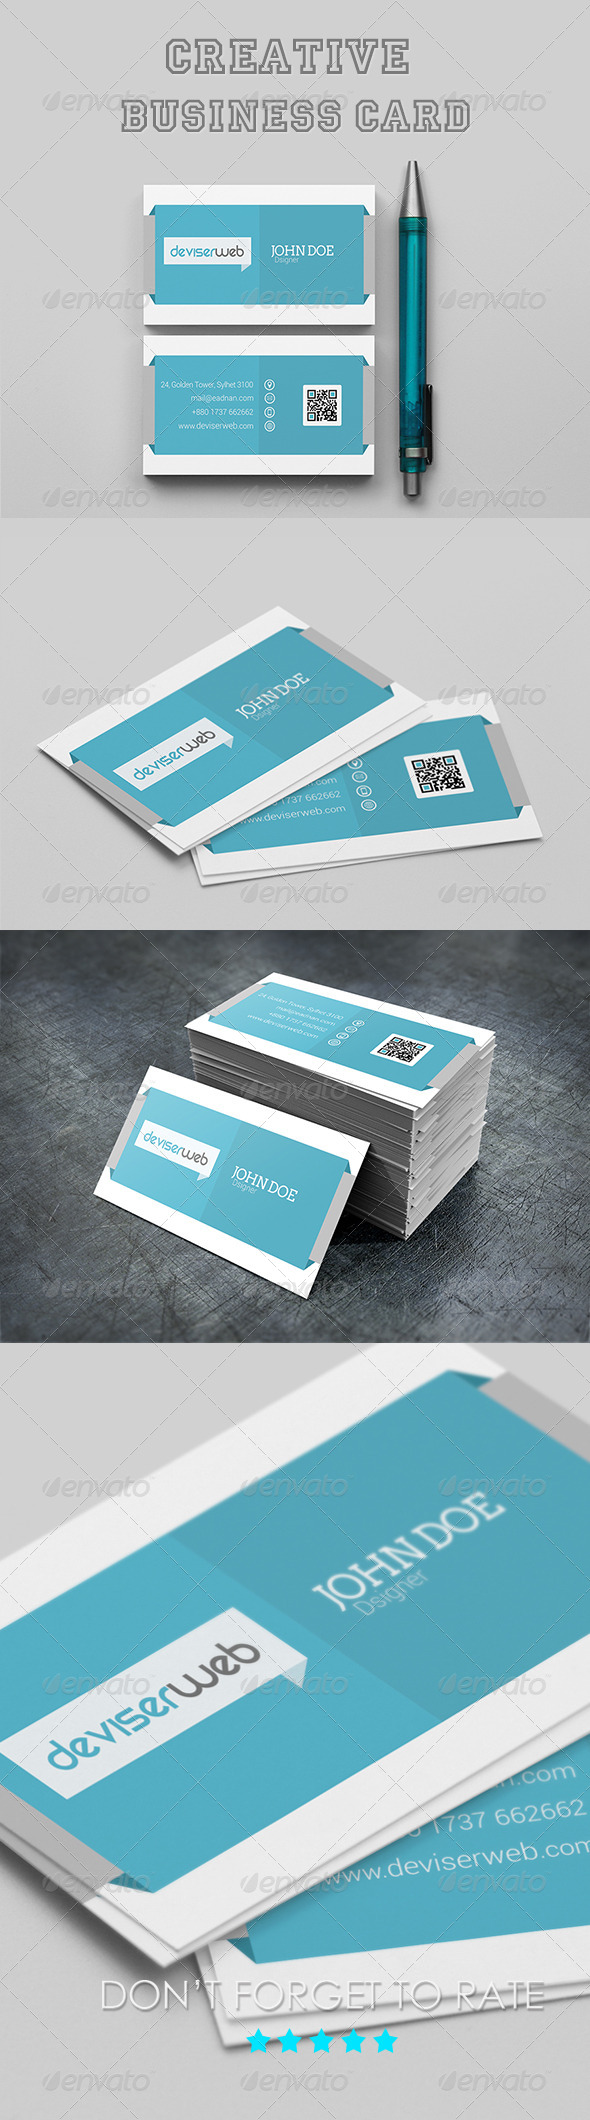 Creative Agency Business Card Template - Creative Business Cards